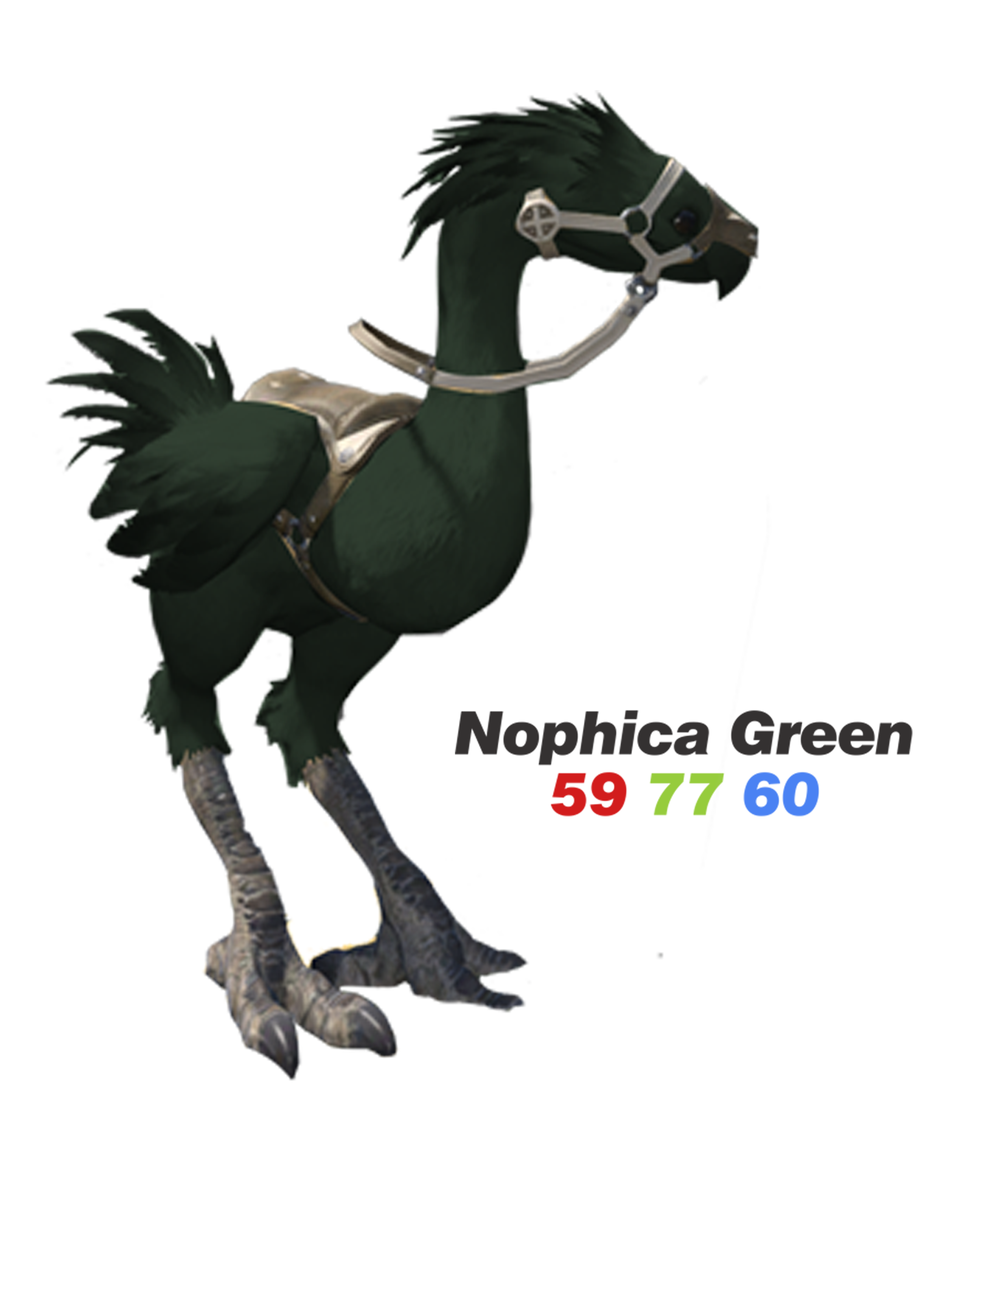 013Nophica.png